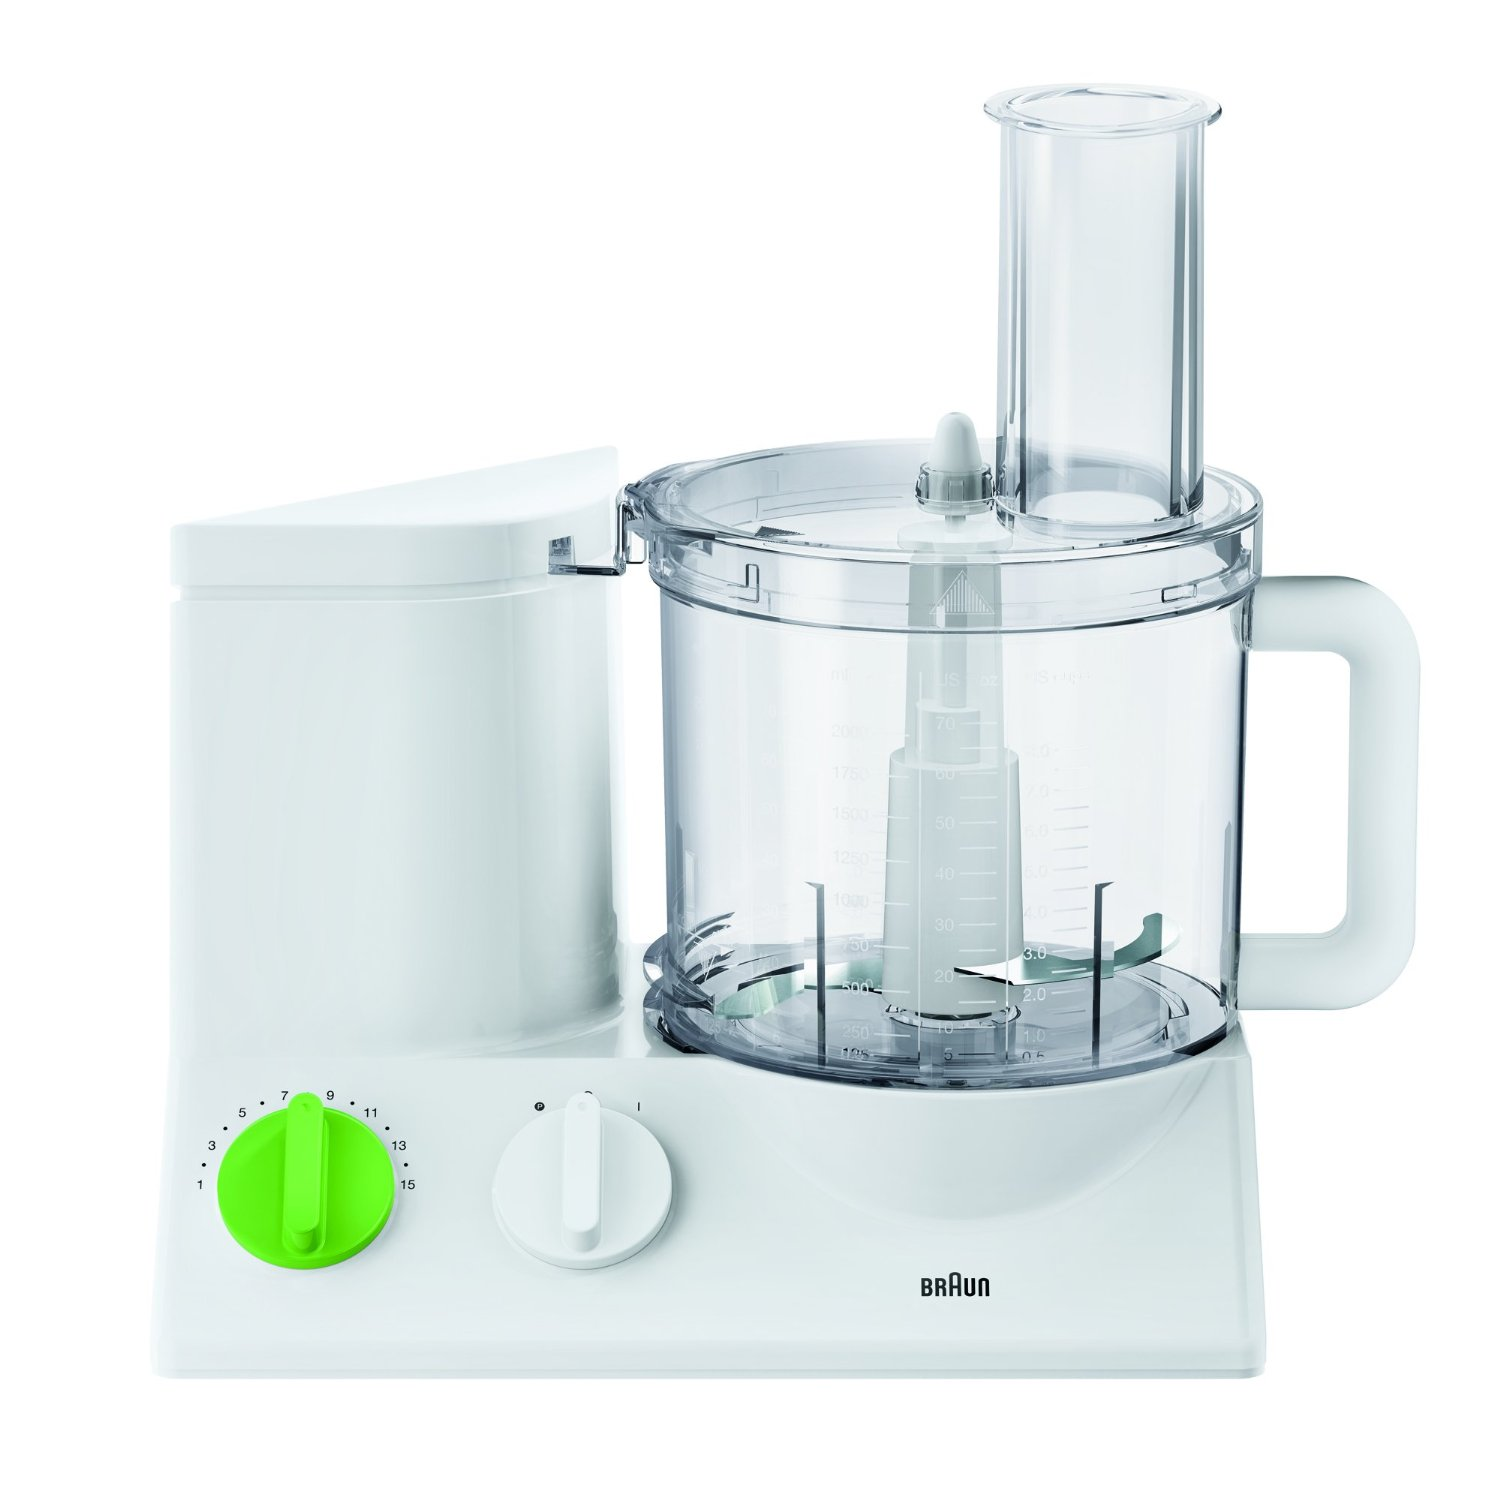 Braun FP3010 Tribute Collection Food Processor, 220 volt 50 Hertz